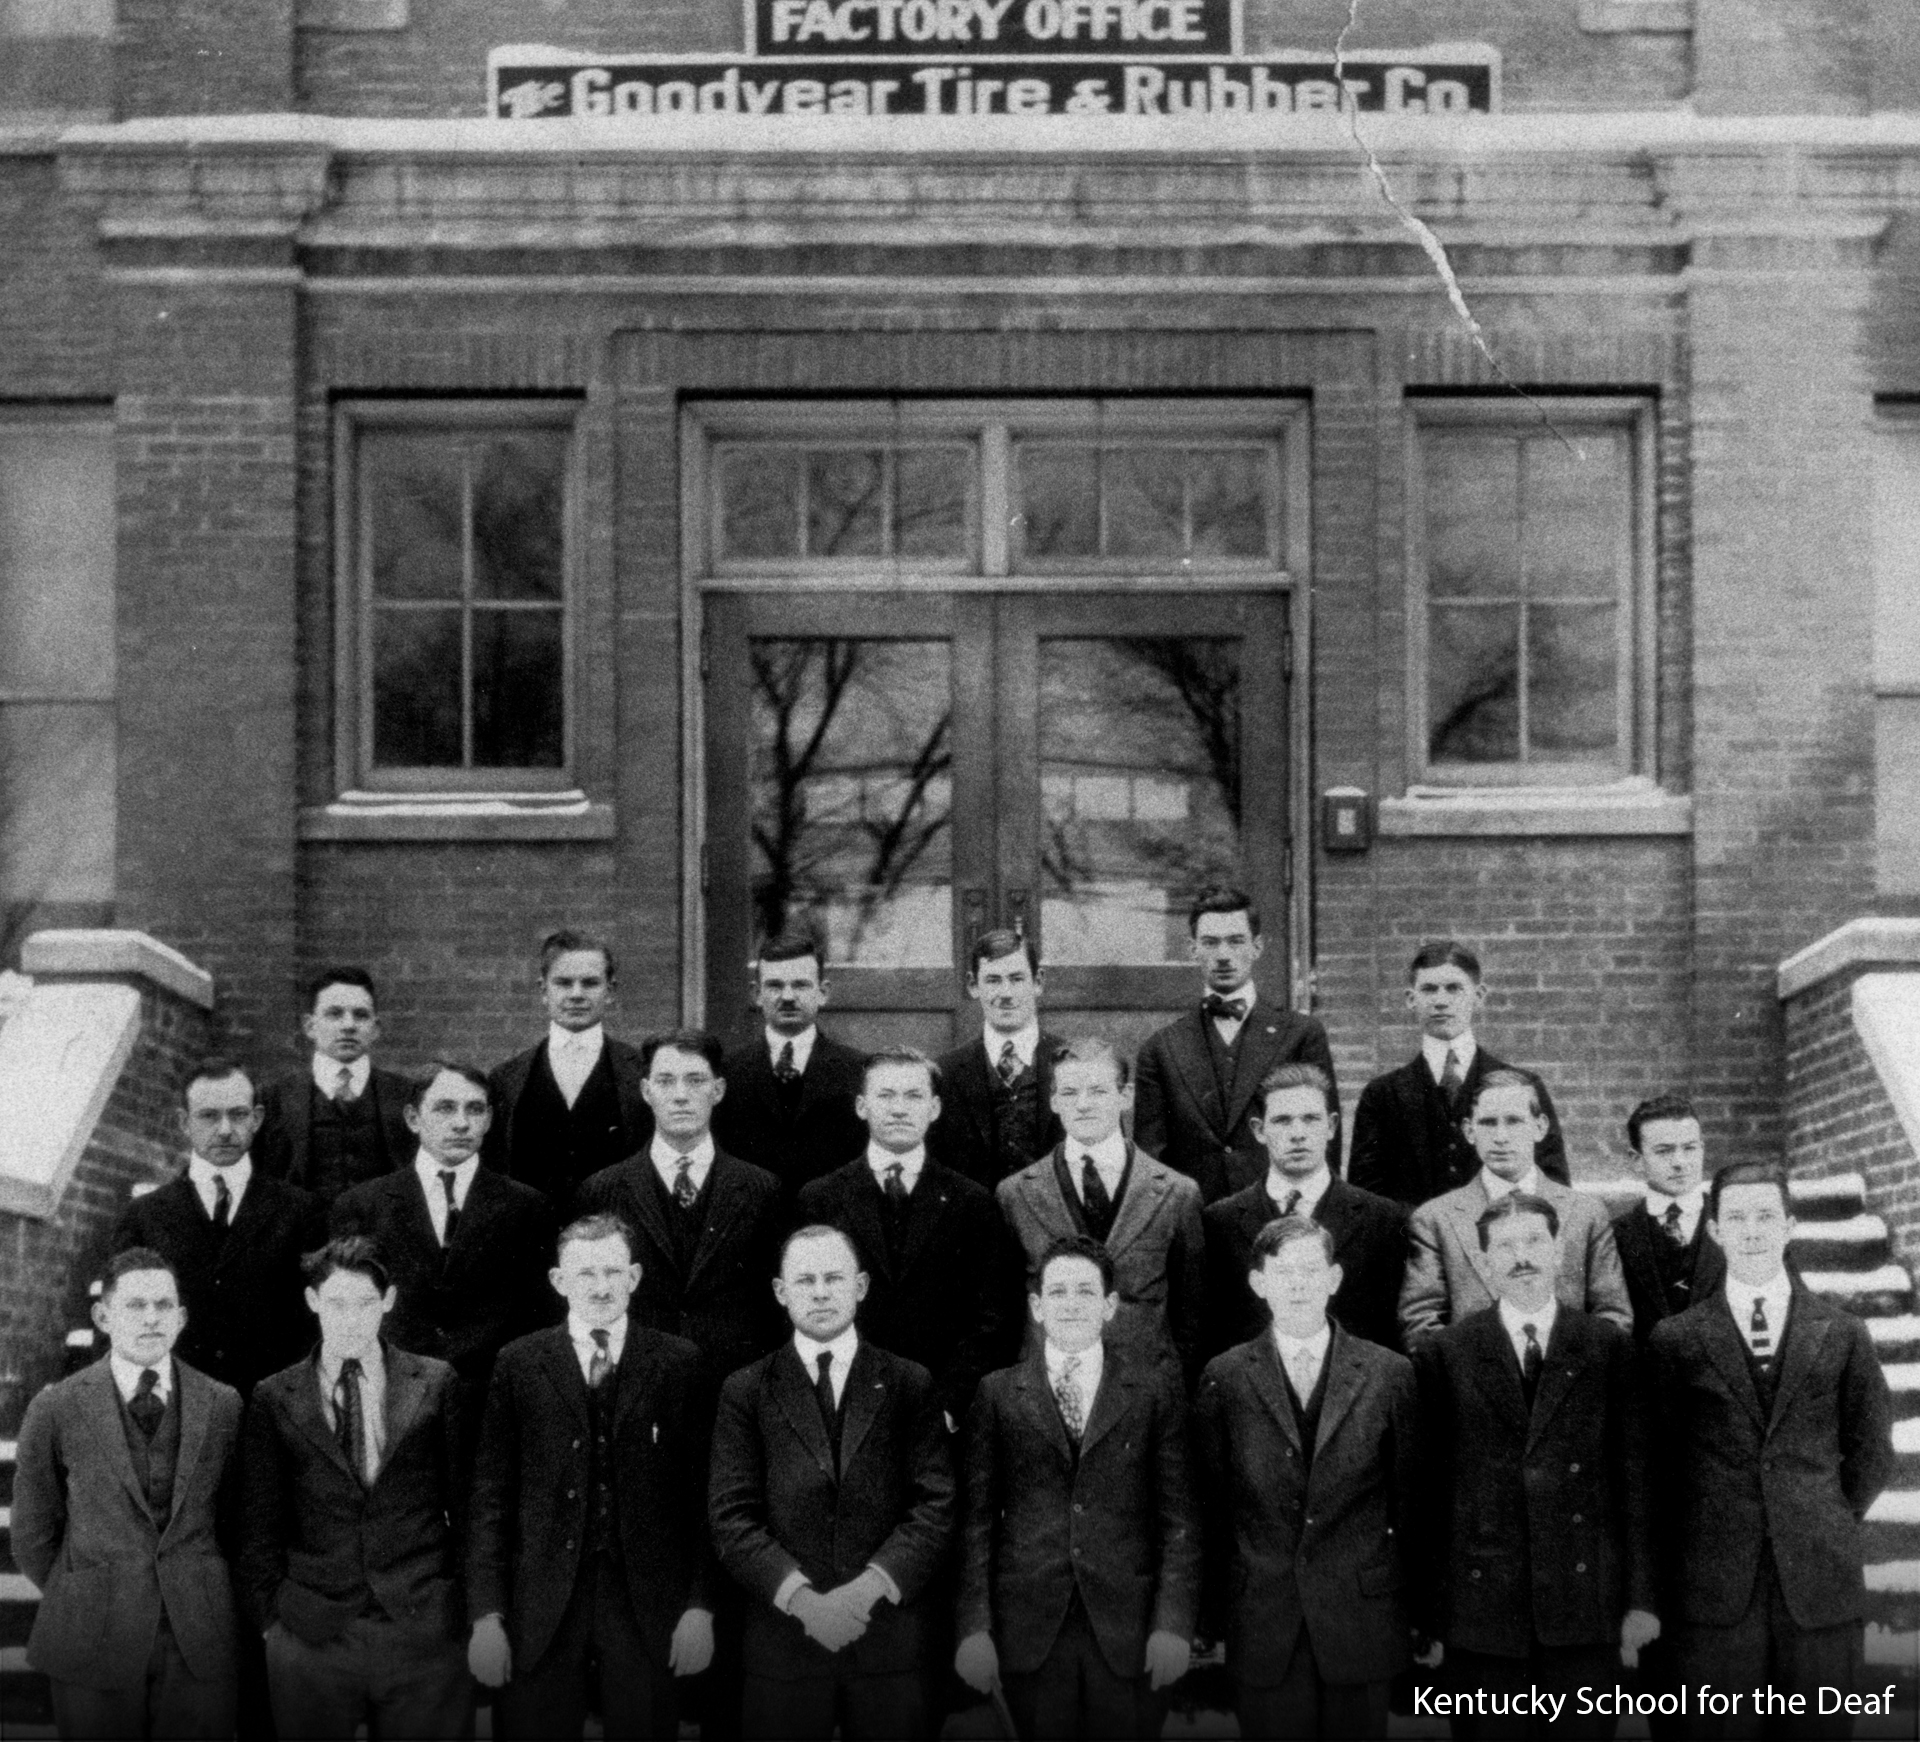 Three rows of KSD Alumni men in their dark suits pose on the factory steps.